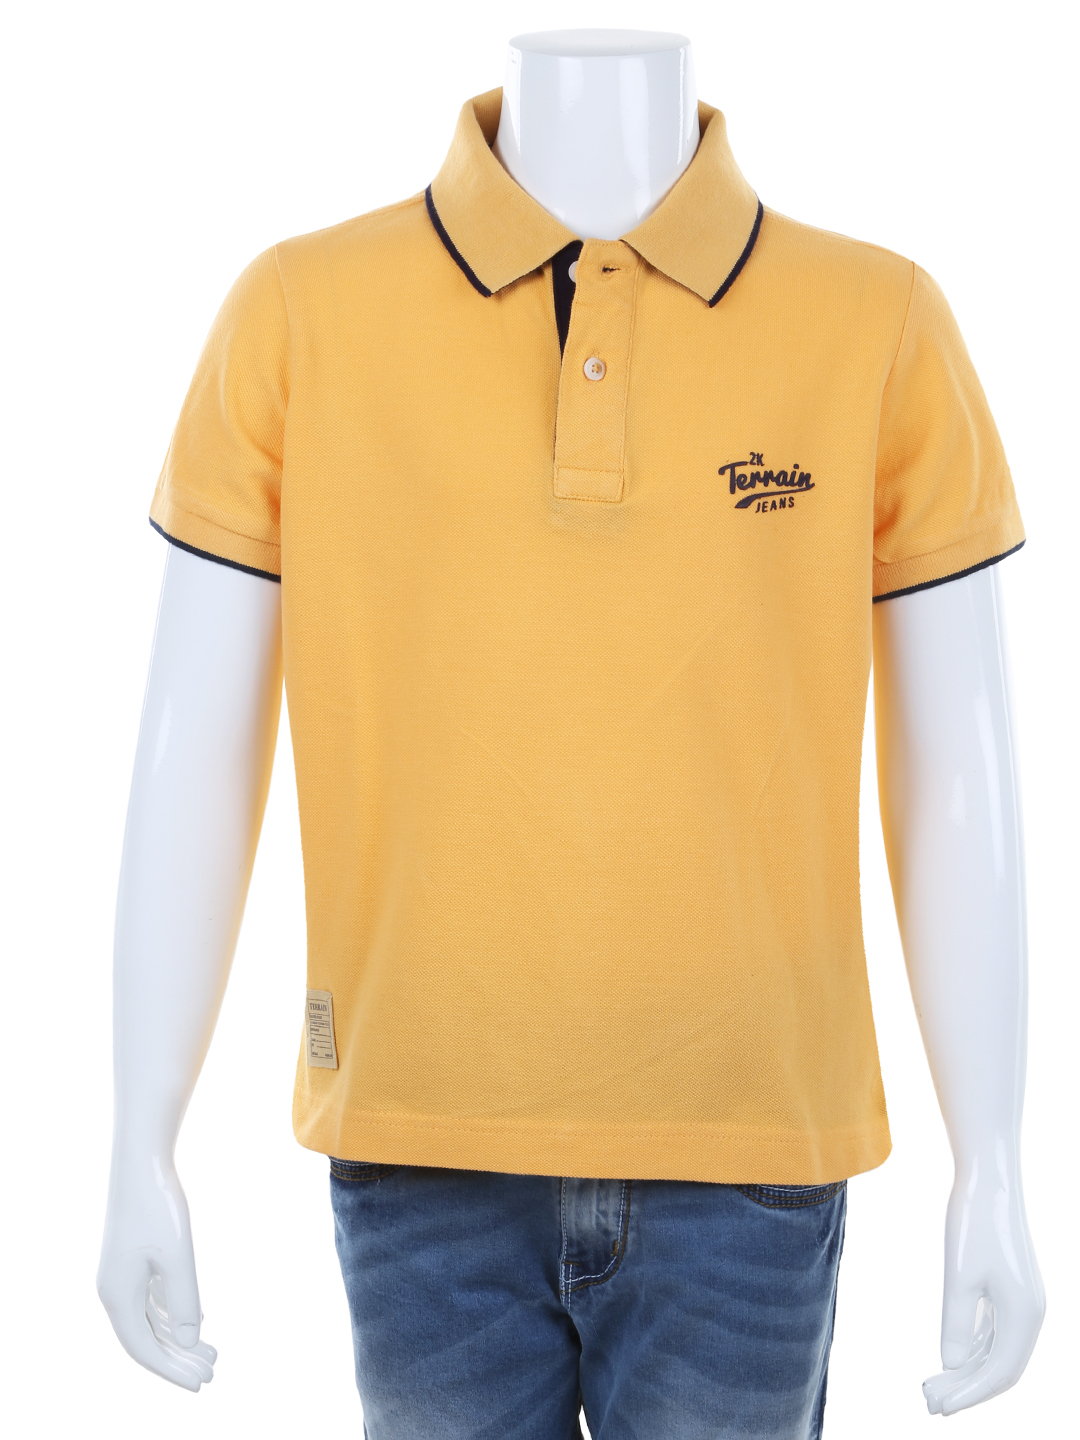 Indian terrain yellow plain cotton casual polo t shirt for Polo t shirts india